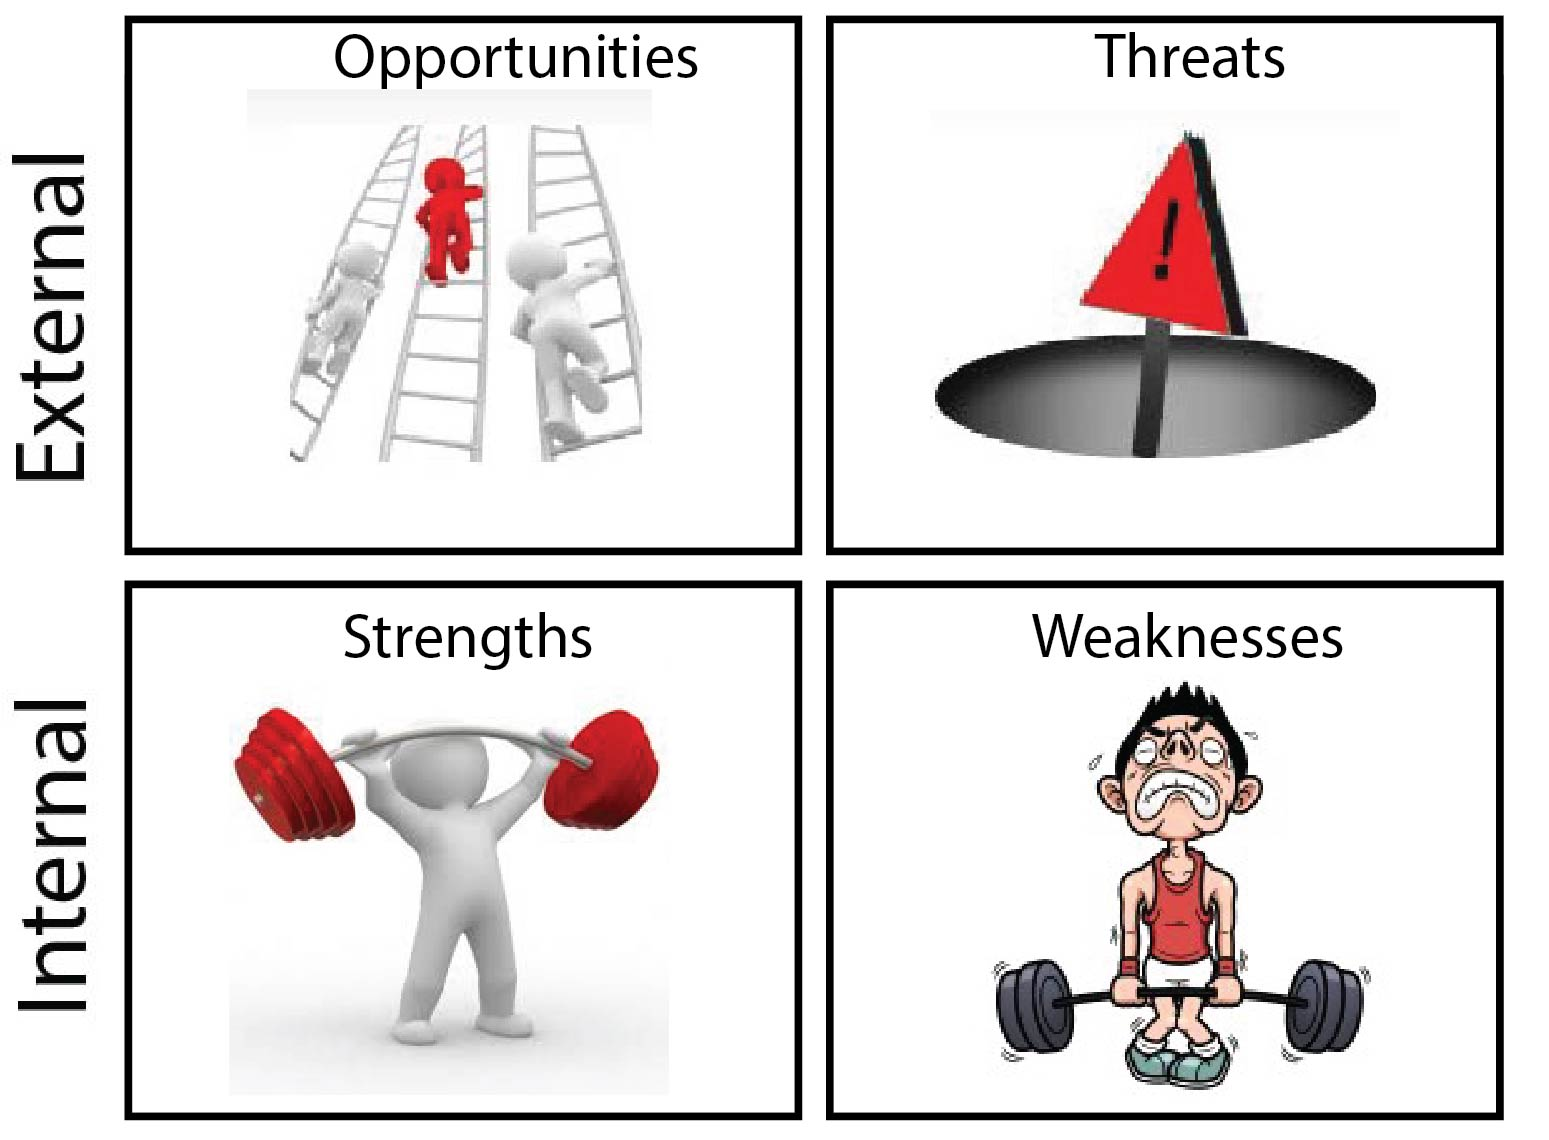 swot analysis in case interviews weakness of the customer base however in case interviews the swot analysis can still be used as a tool to segment influences into a 2x2 matrix